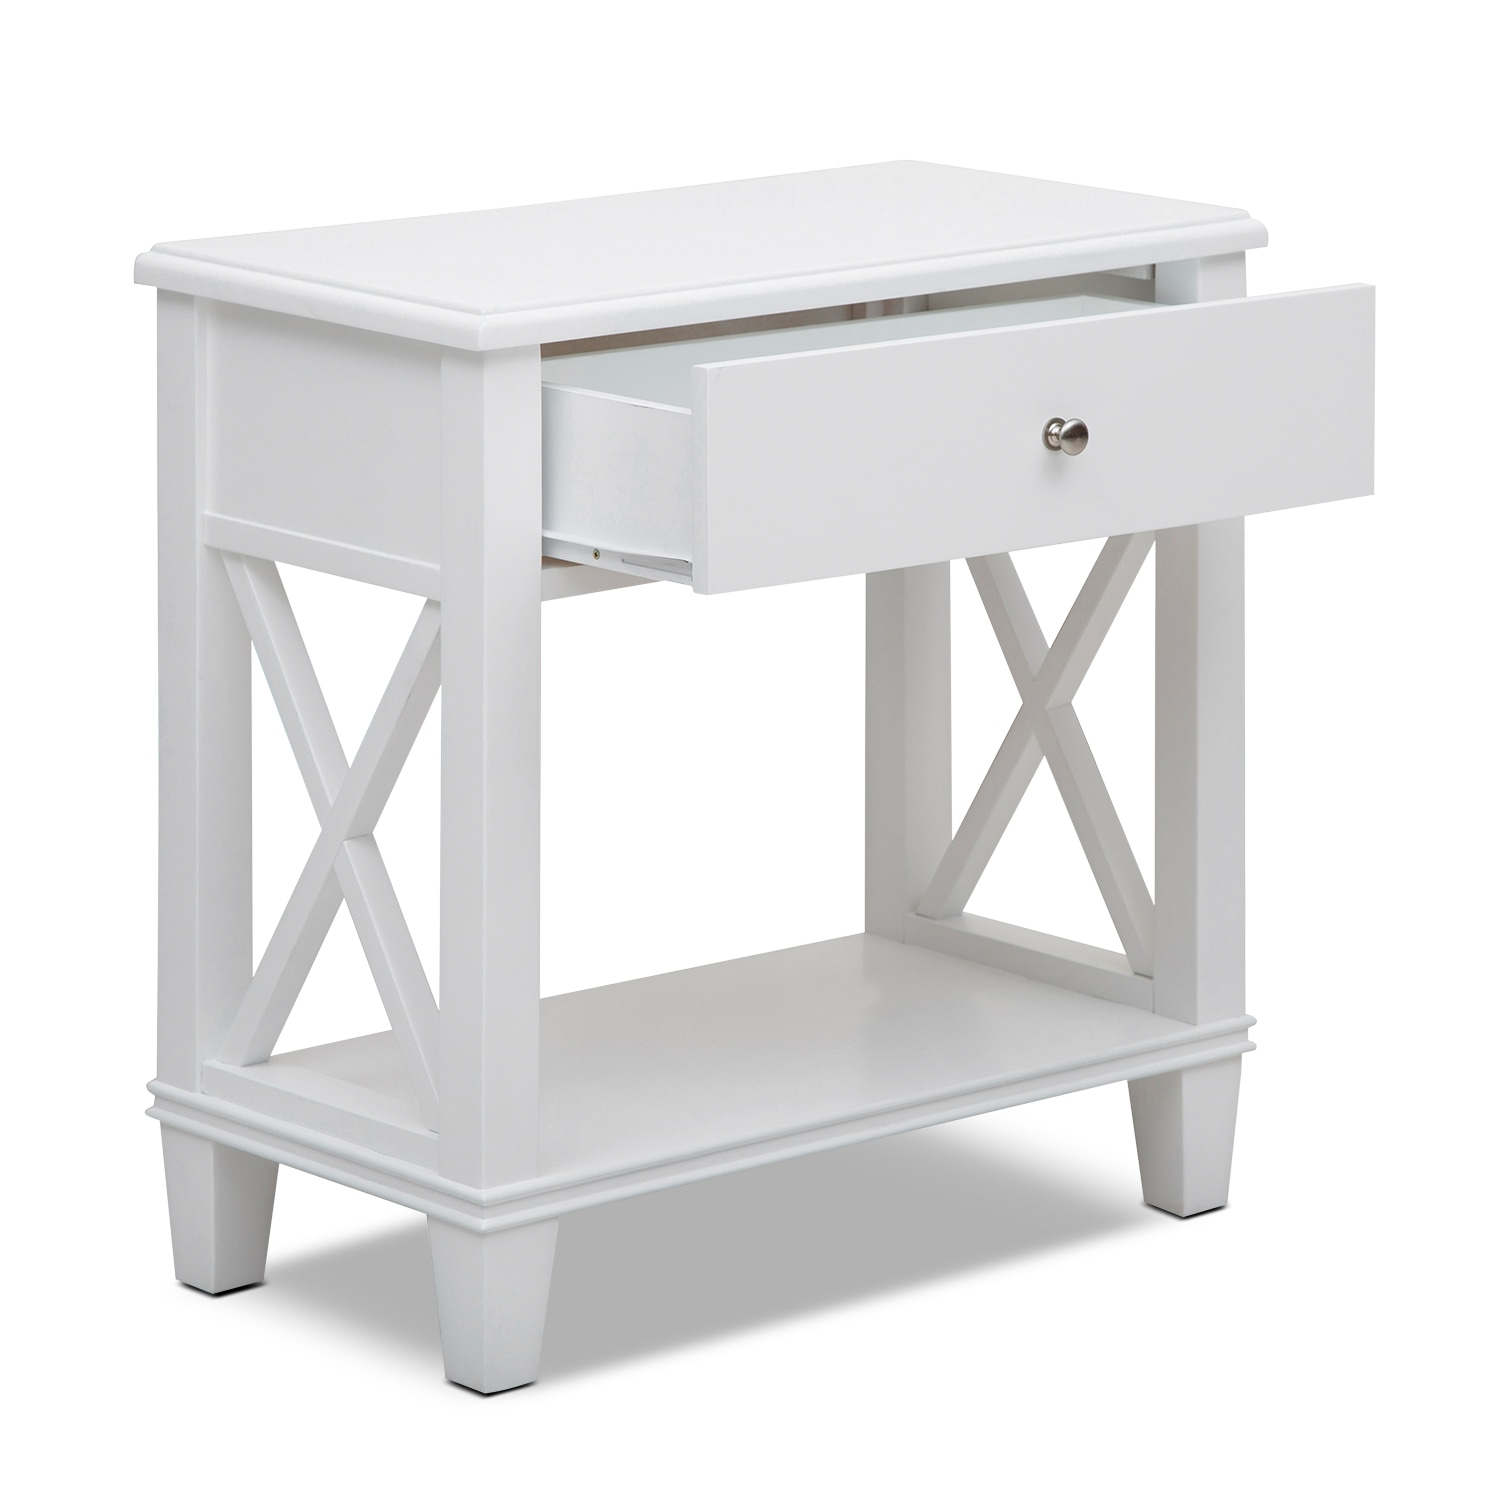 tag archived chevy bench seat console amazing small fabric table corner antique furniture white marble whitewash metal nero distressed accent top end living eryn pedestal room